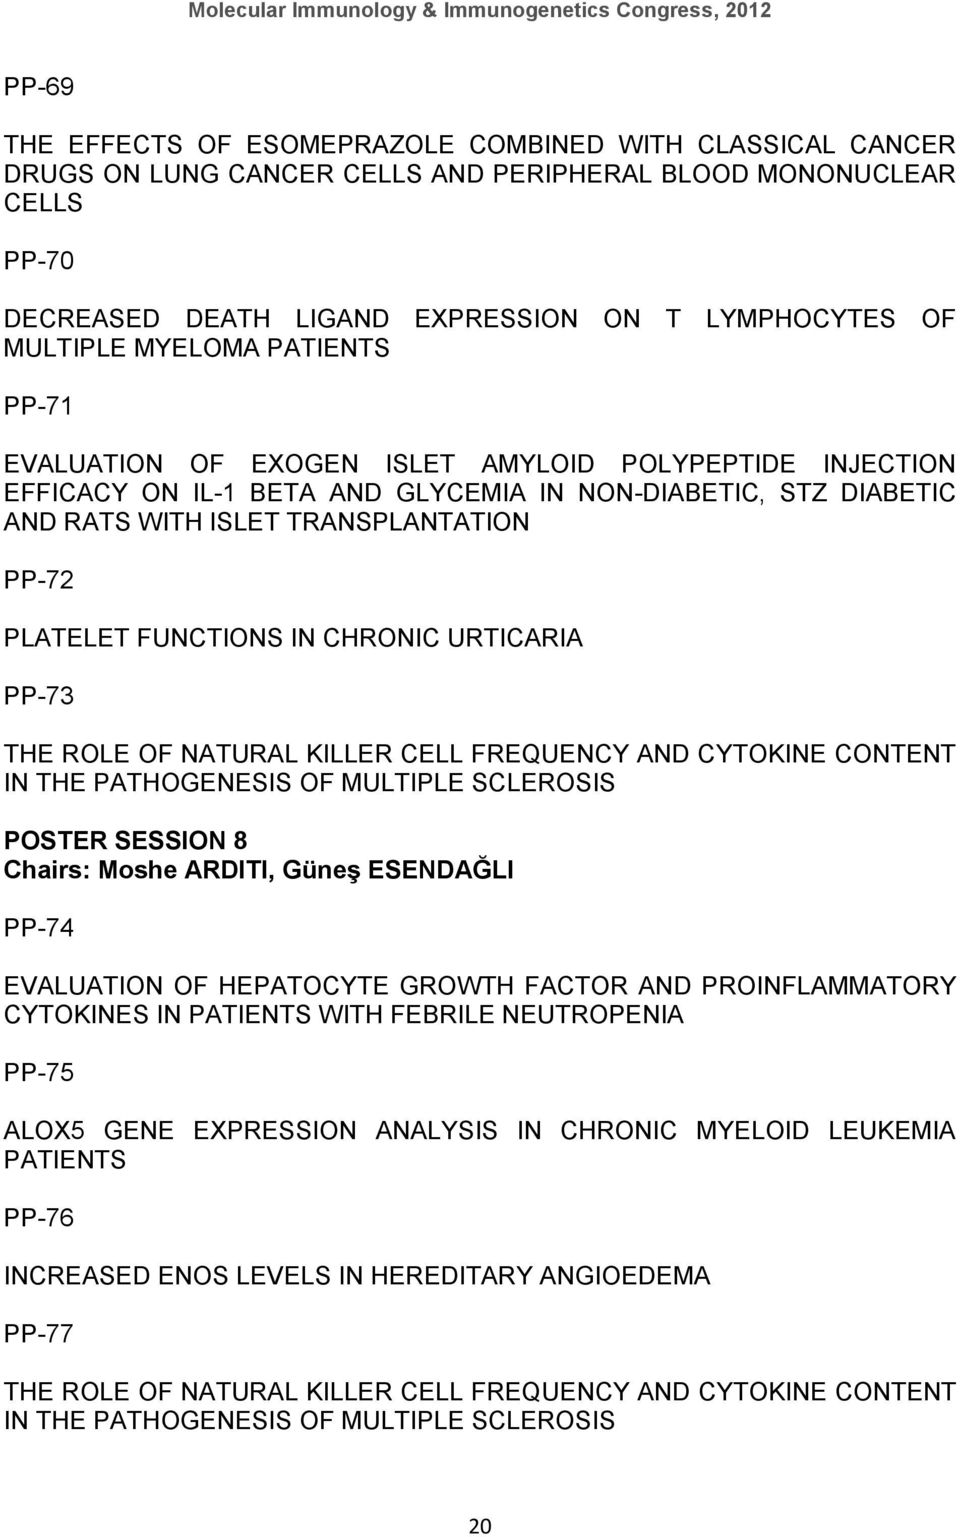 FUNCTIONS IN CHRONIC URTICARIA PP-73 THE ROLE OF NATURAL KILLER CELL FREQUENCY AND CYTOKINE CONTENT IN THE PATHOGENESIS OF MULTIPLE SCLEROSIS POSTER SESSION 8 Chairs: Moshe ARDITI, Güneş ESENDAĞLI